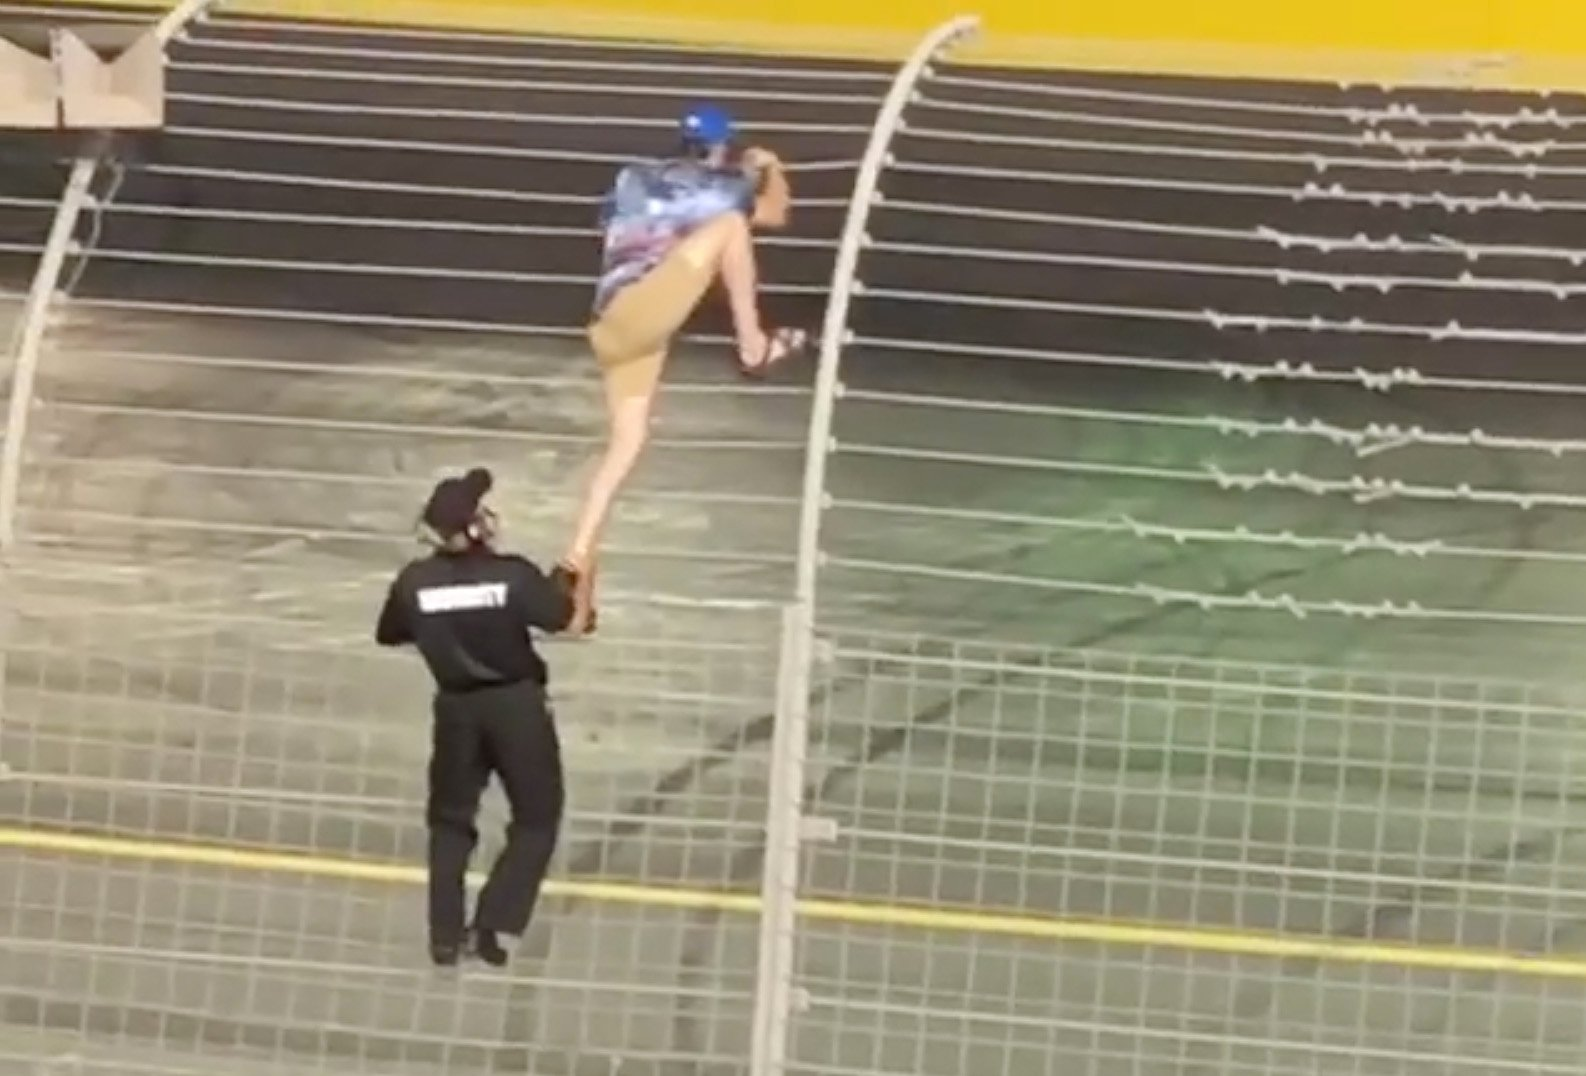 Nascar Racing Games >> NASCAR fan climbs the fence during the race at Charlotte